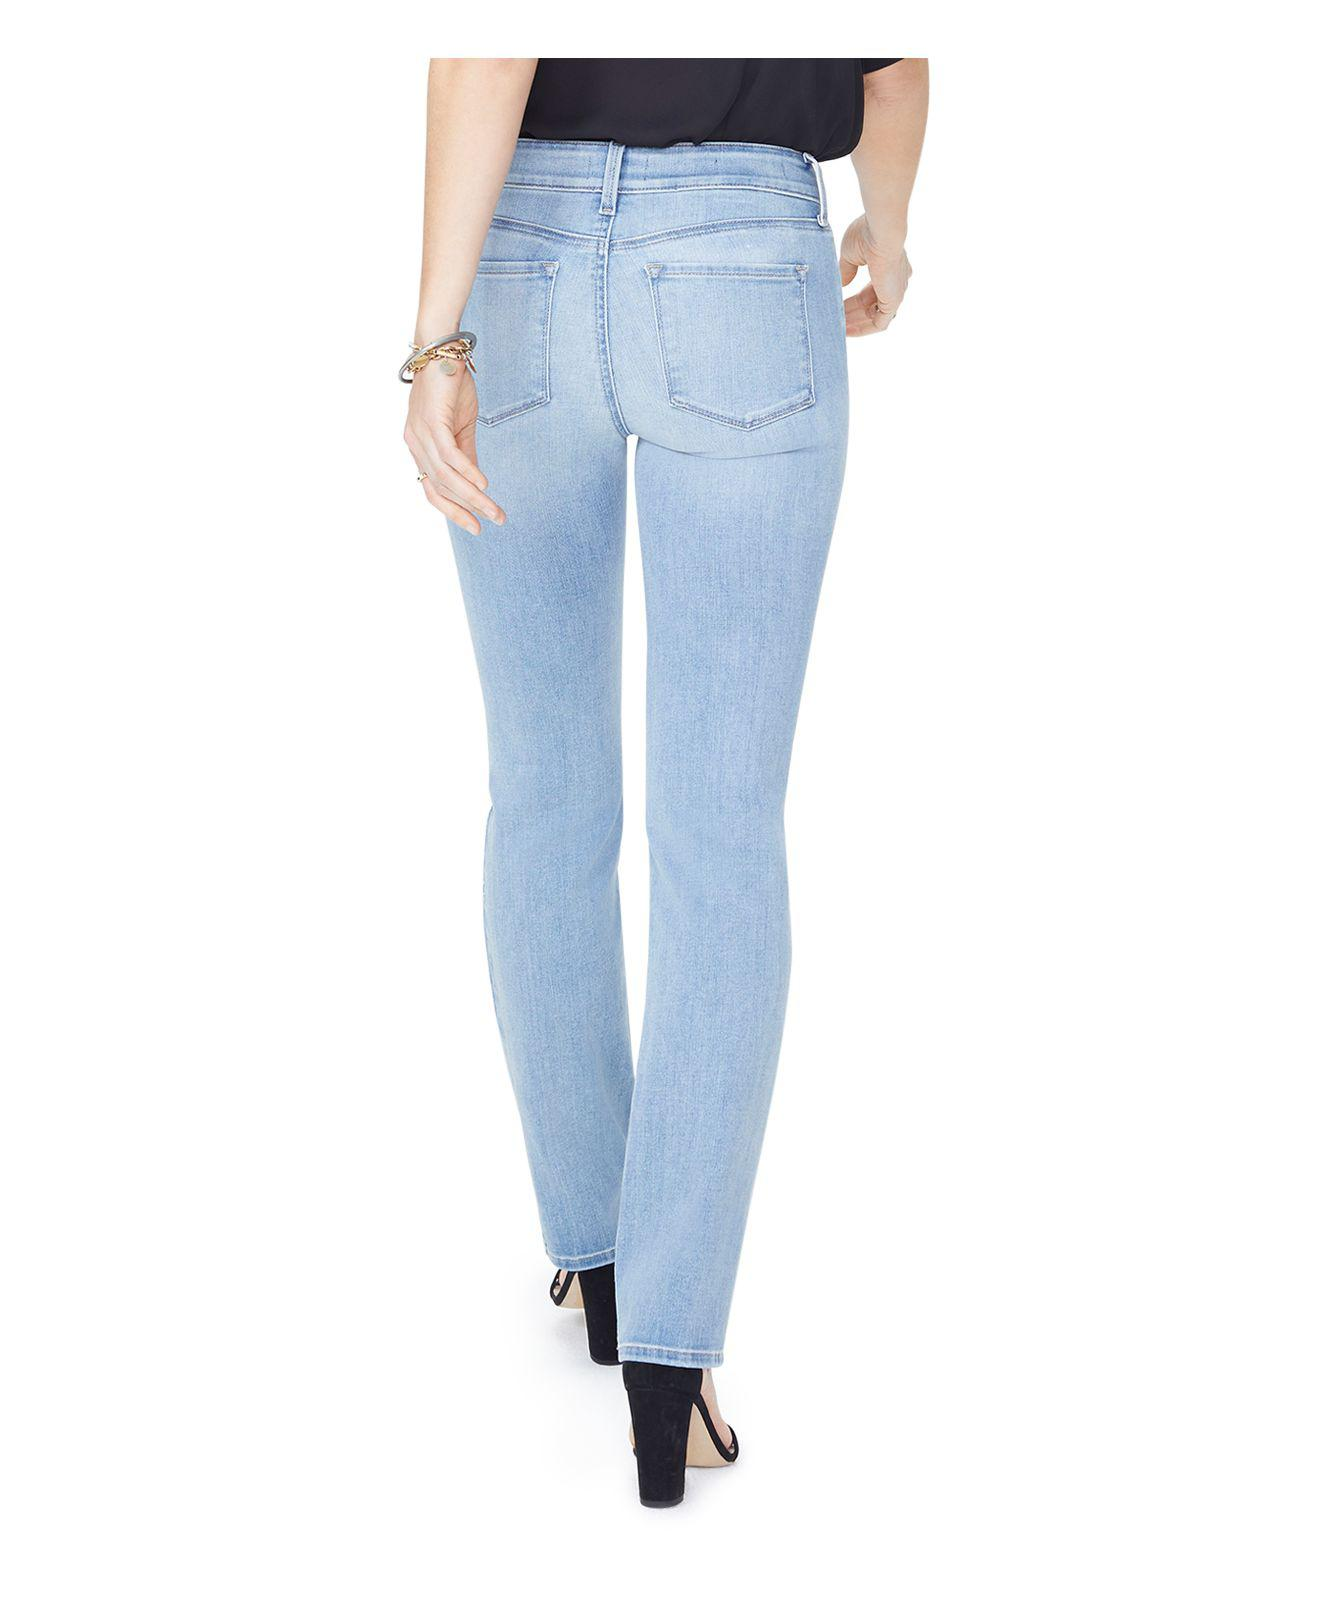 Top Quality For Sale Marilyn Straight in Dreamstate (Dreamstate) Womens Jeans NYDJ Free Shipping Outlet Big Sale 7wU4aAGDT